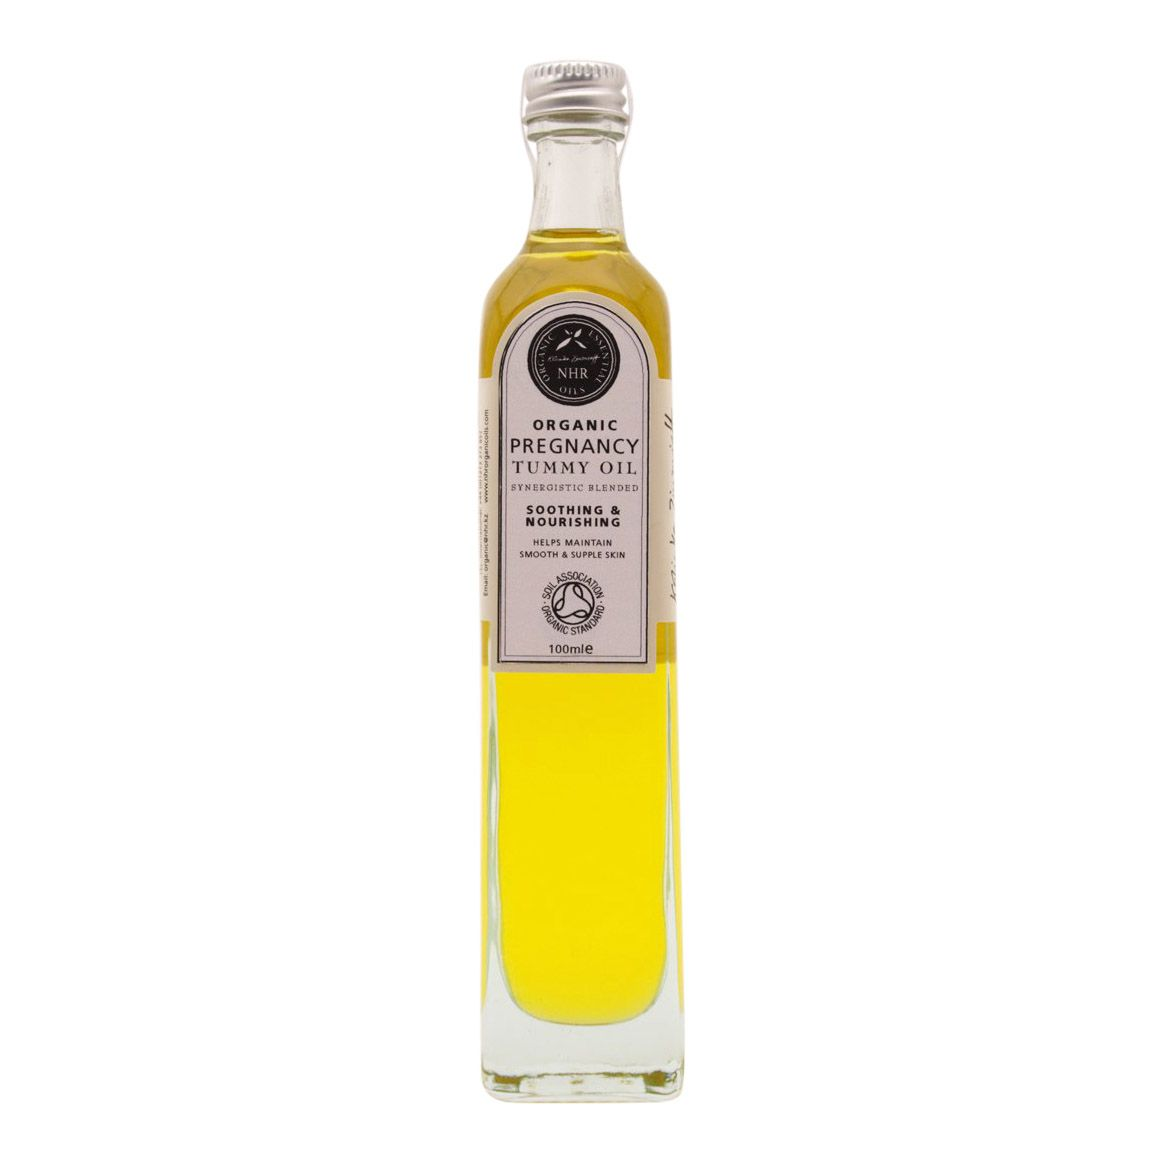 Organic Pregnancy Tummy Oil